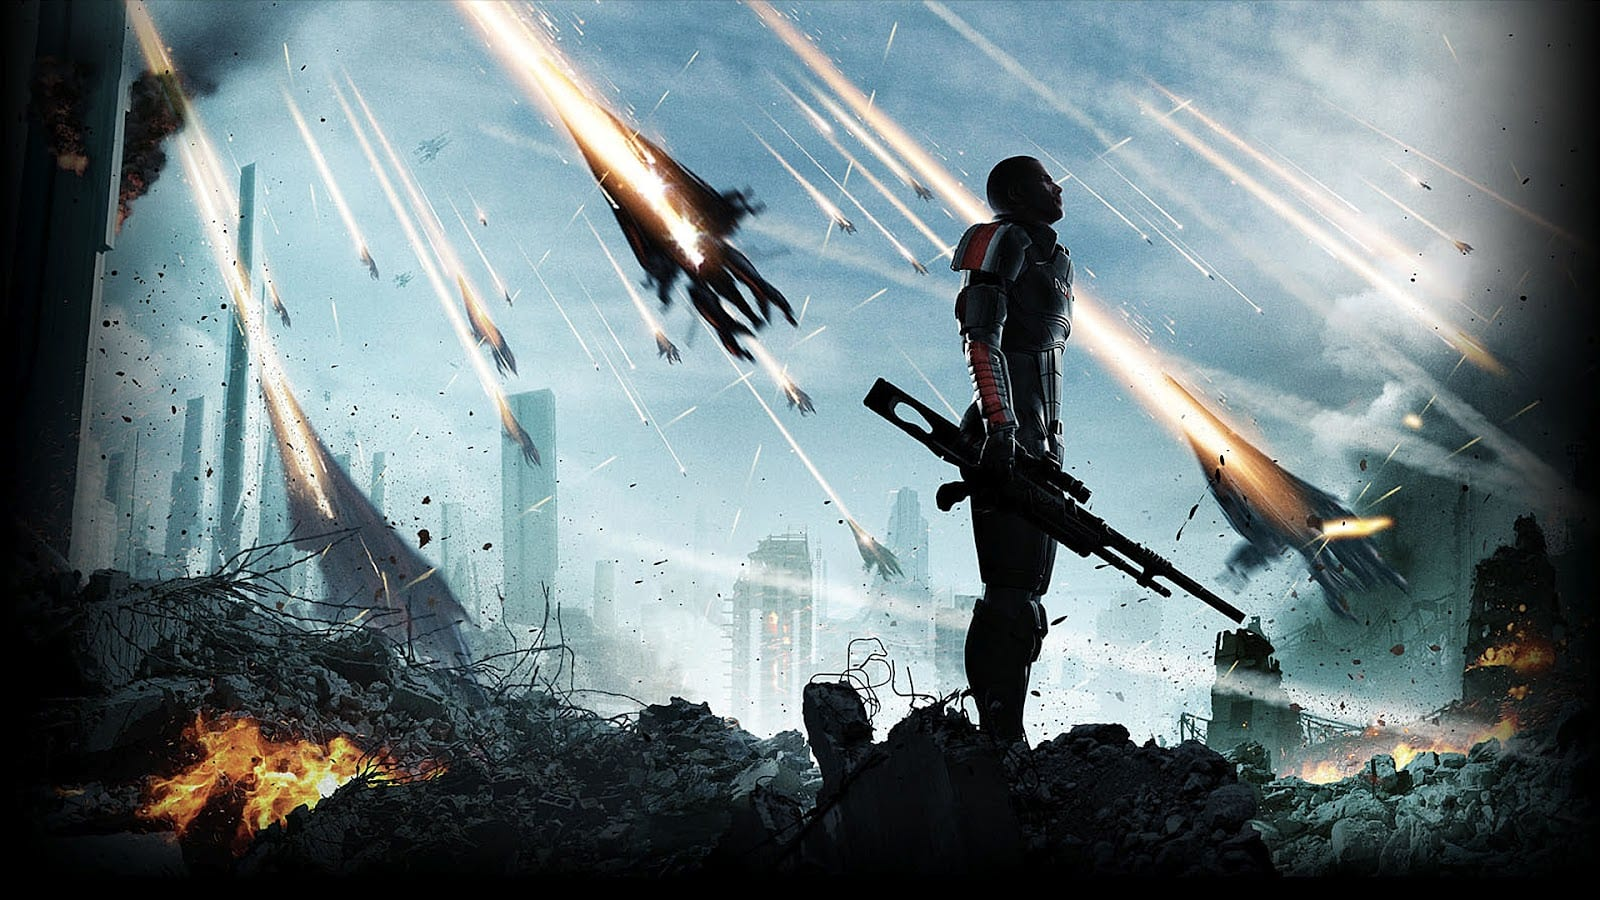 mass effect 3 screenshot 11 art